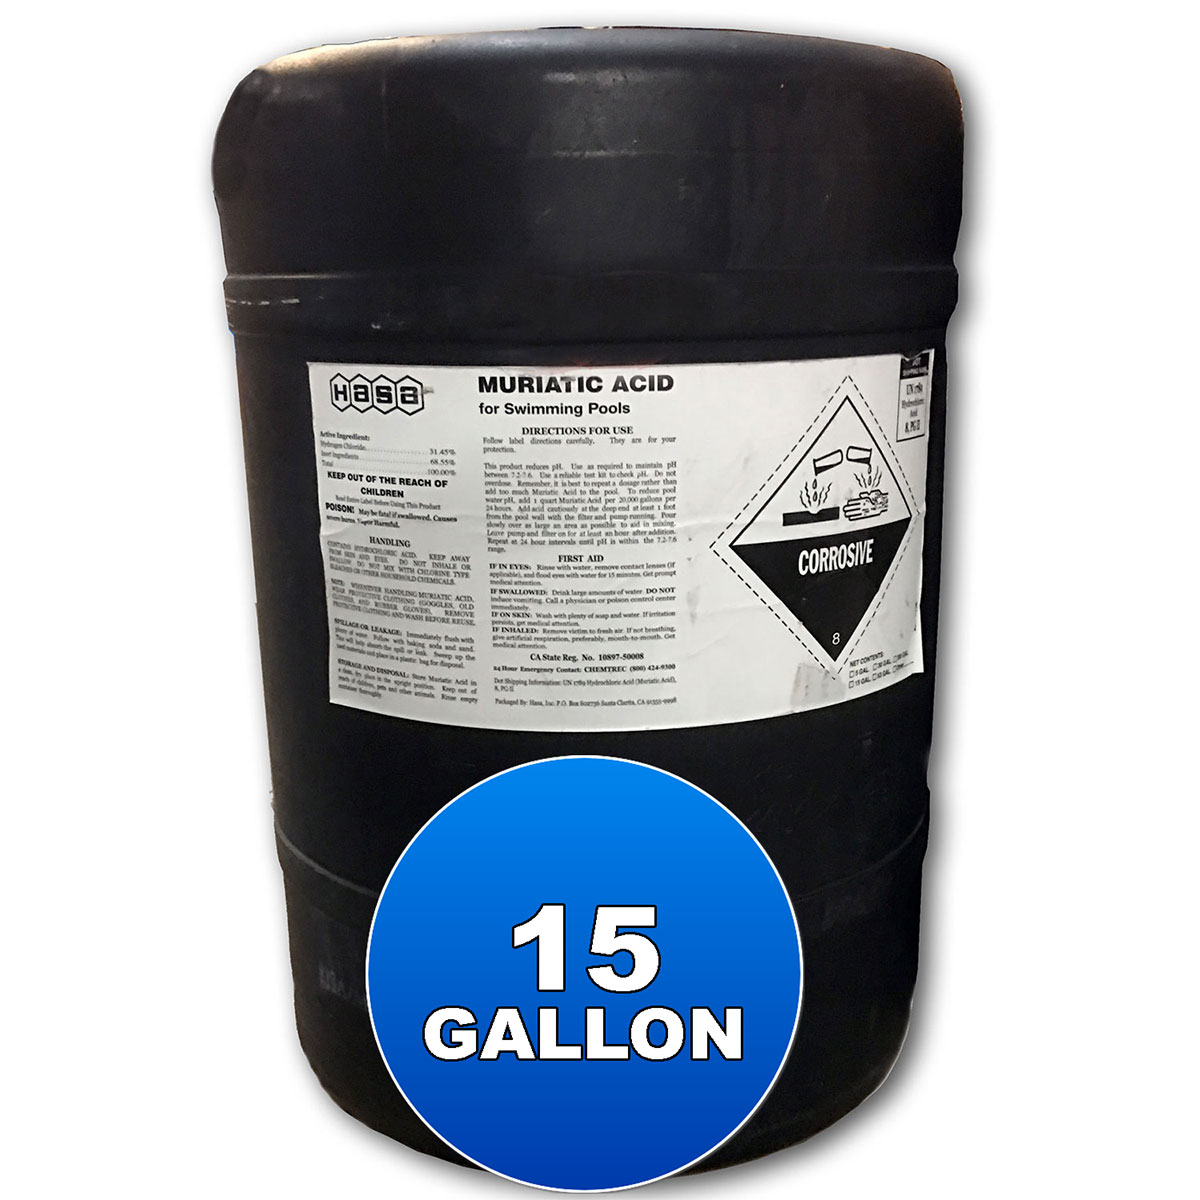 15 Gallon Liquid Chlorine 12.5%, Hasa - Bulk Chemicals